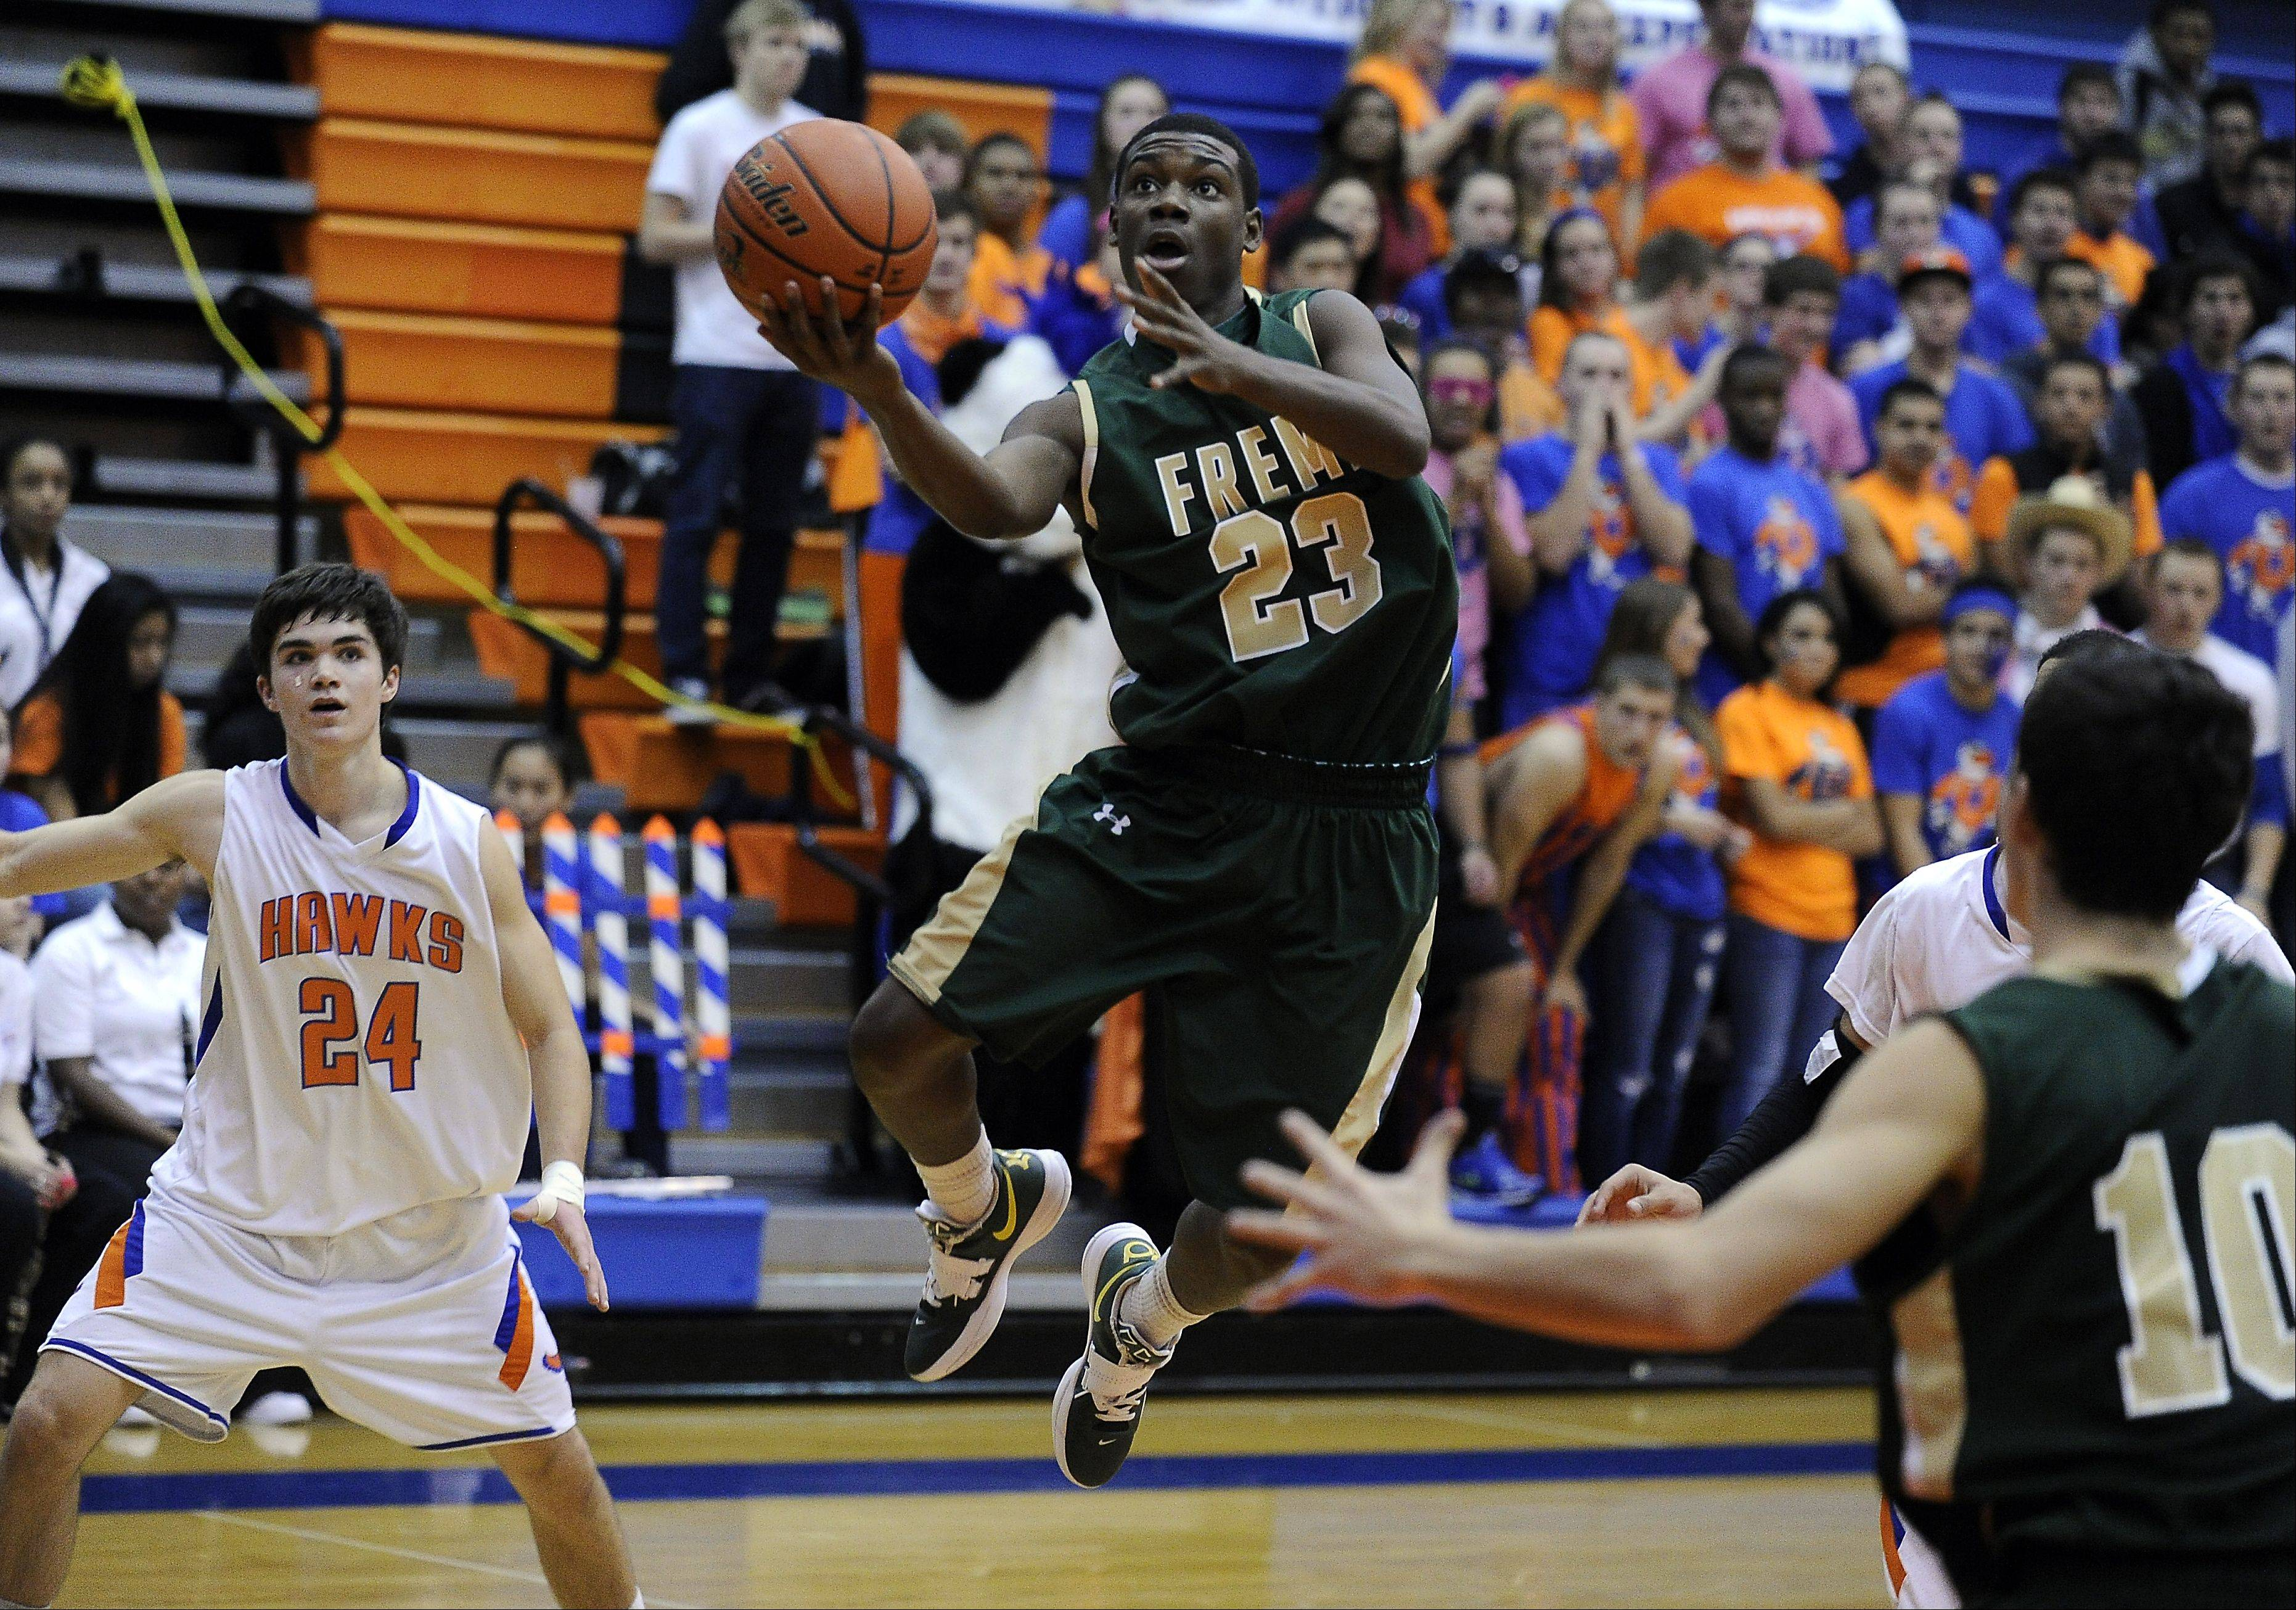 Images: Hoffman Estates vs. Fremd, boys basketball